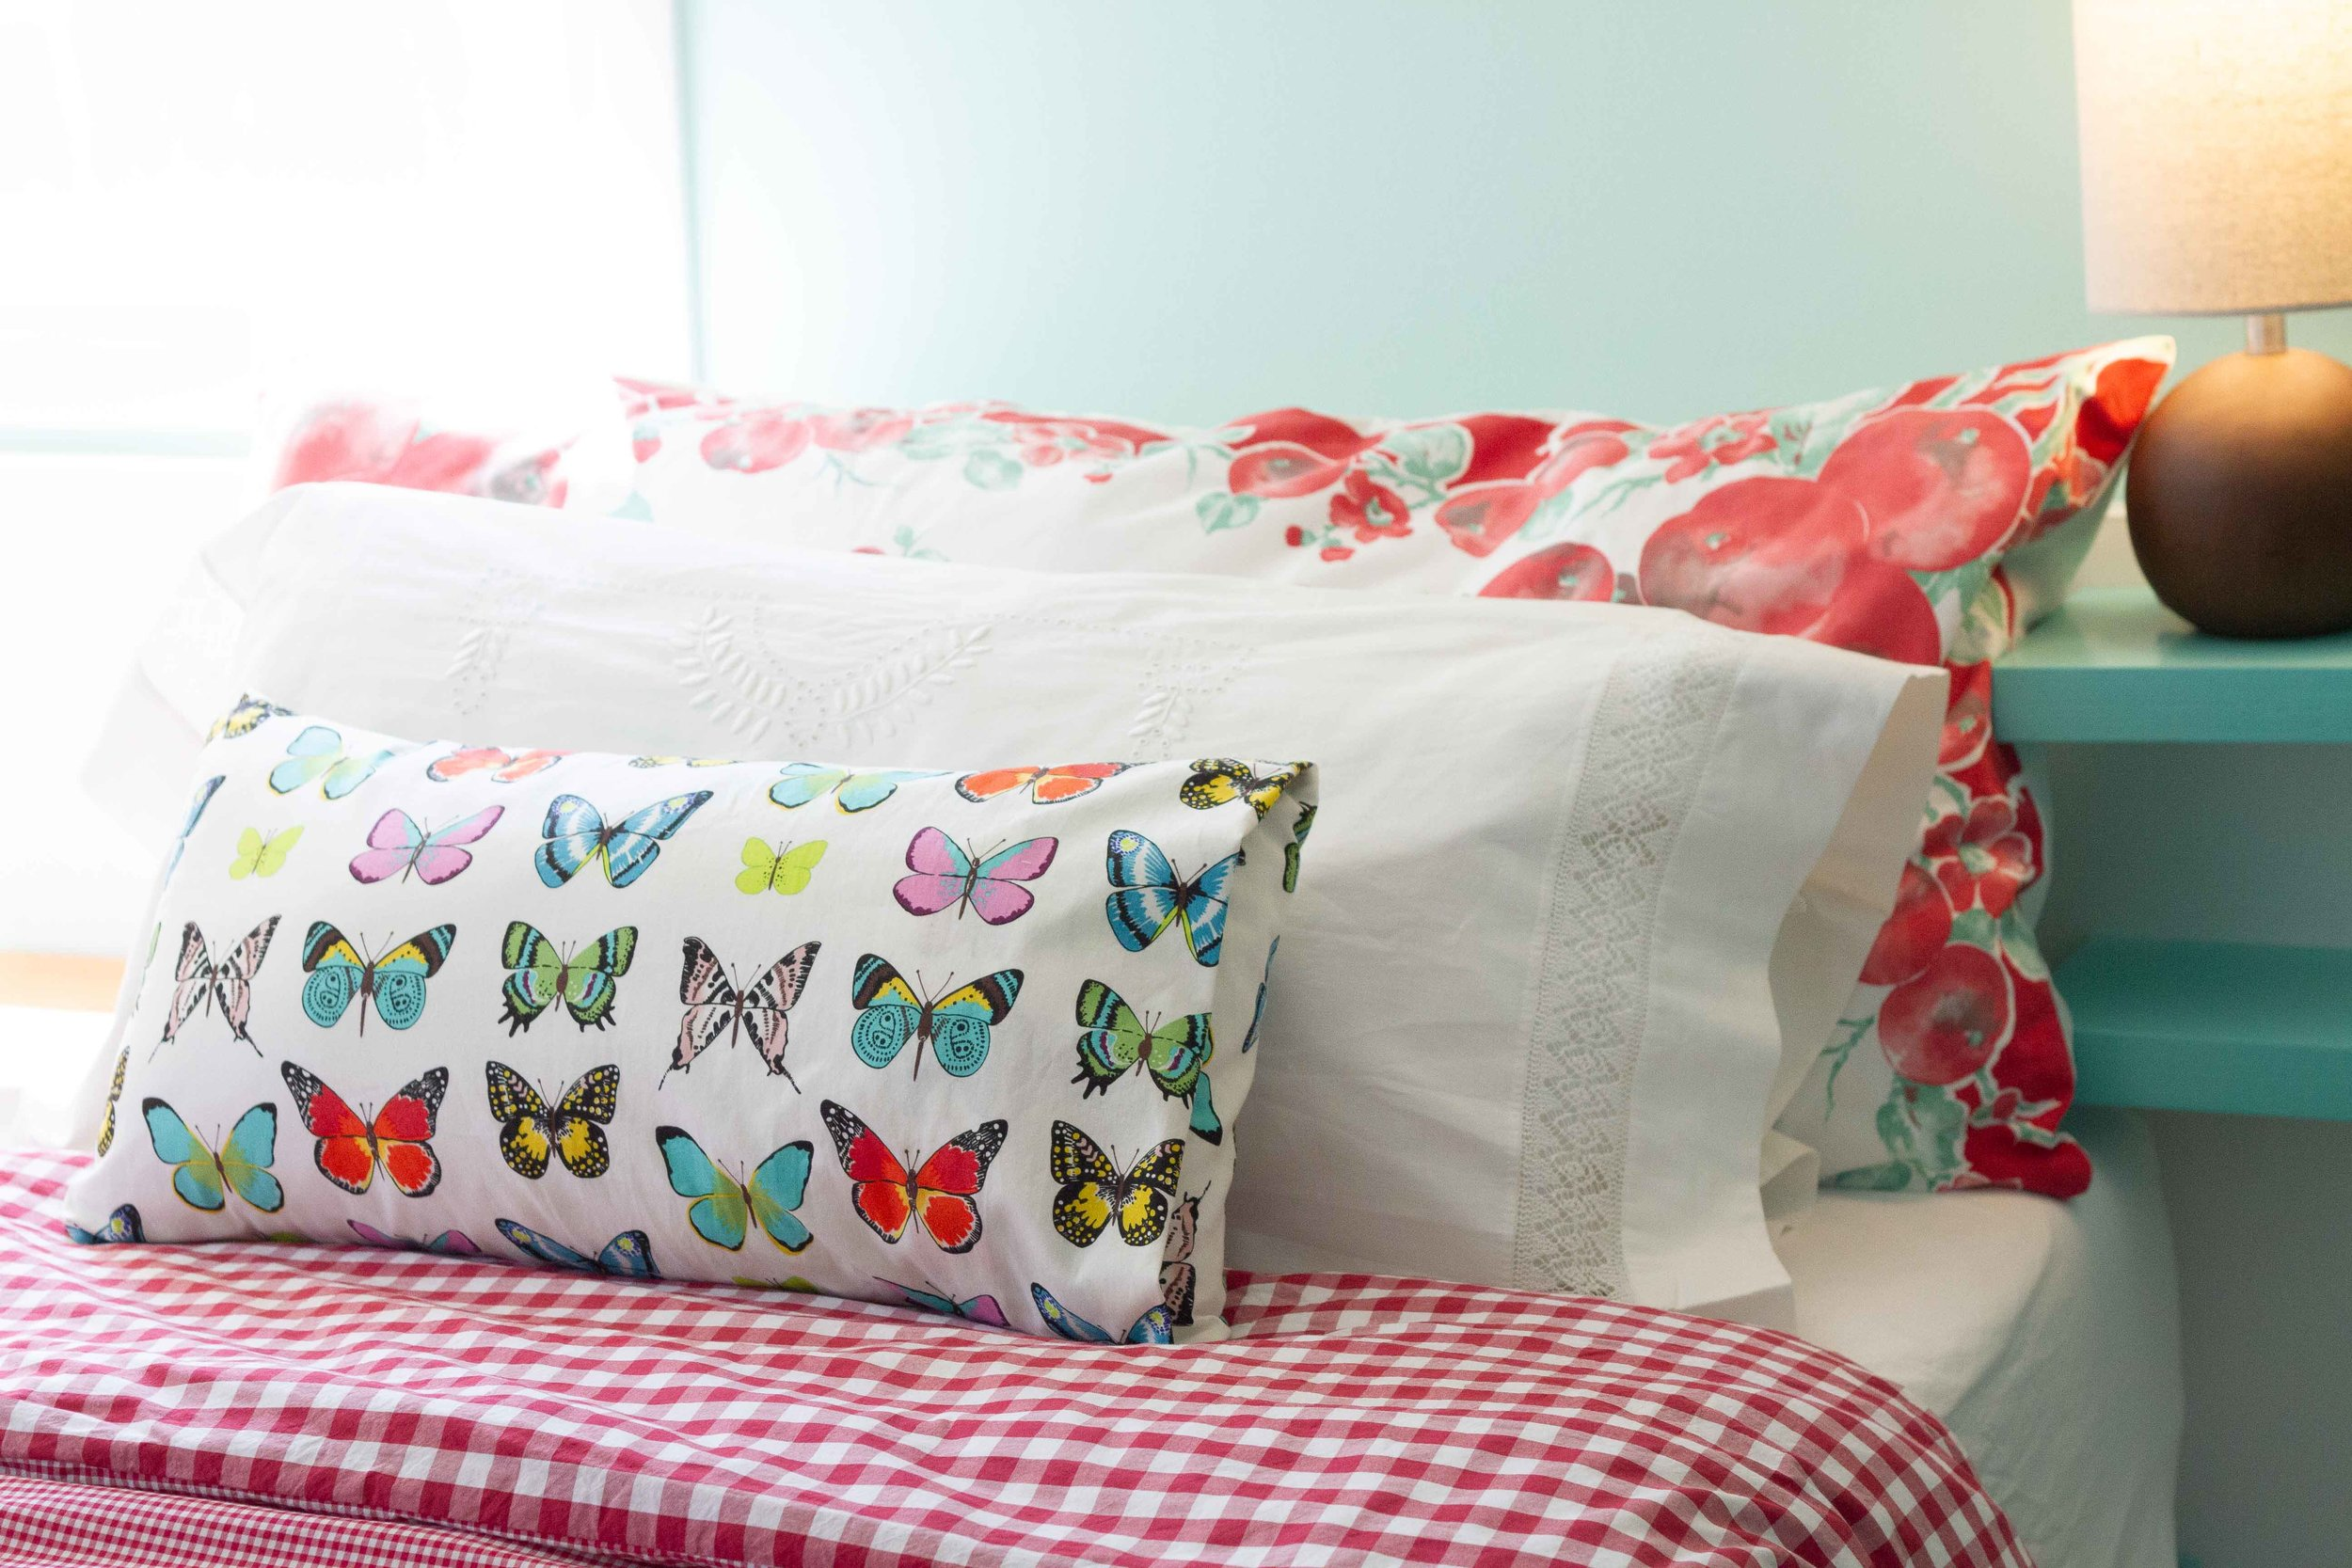 Putting a duvet cover on the duvet can be easy and quick.